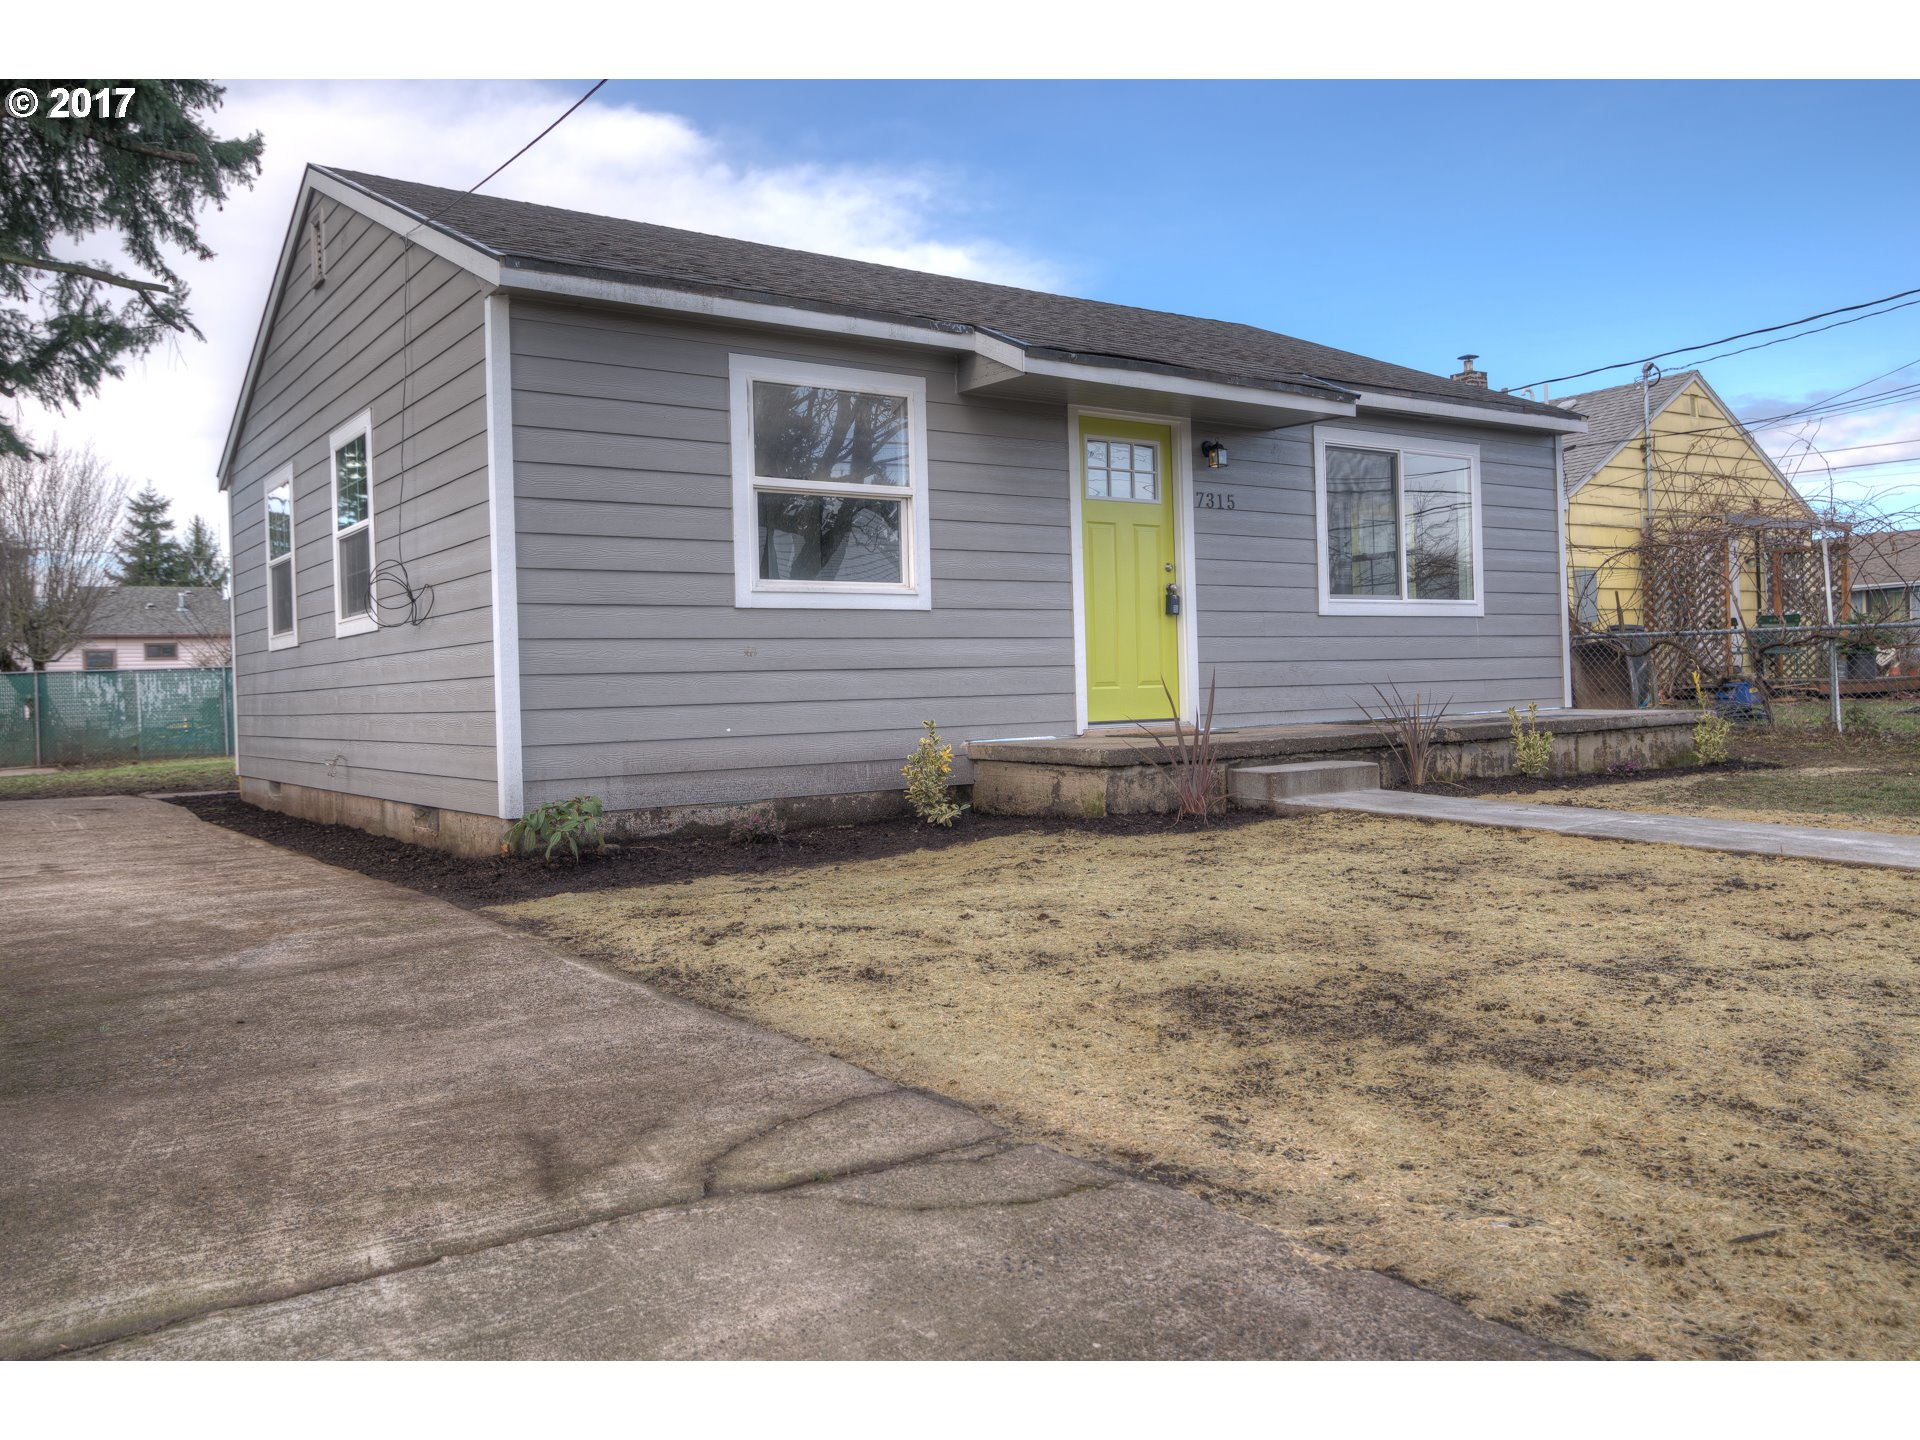 720 sq. ft 2 bedrooms 1 bathrooms  House For Sale, Portland, OR